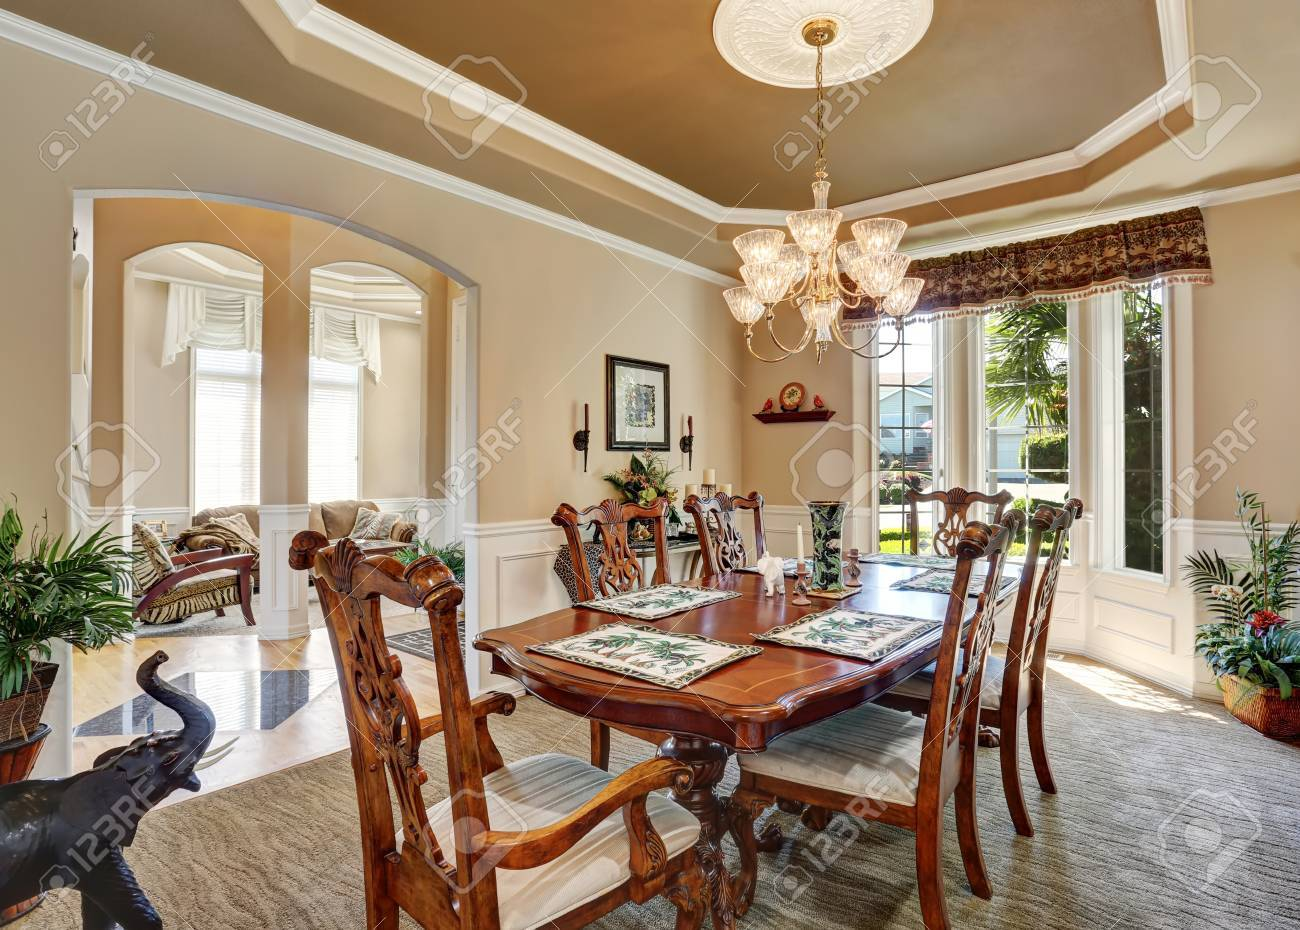 Gorgeous Dining Room Interior Design With Vintage Furniture, French  Windows. Elegant Chandelier Above Carved